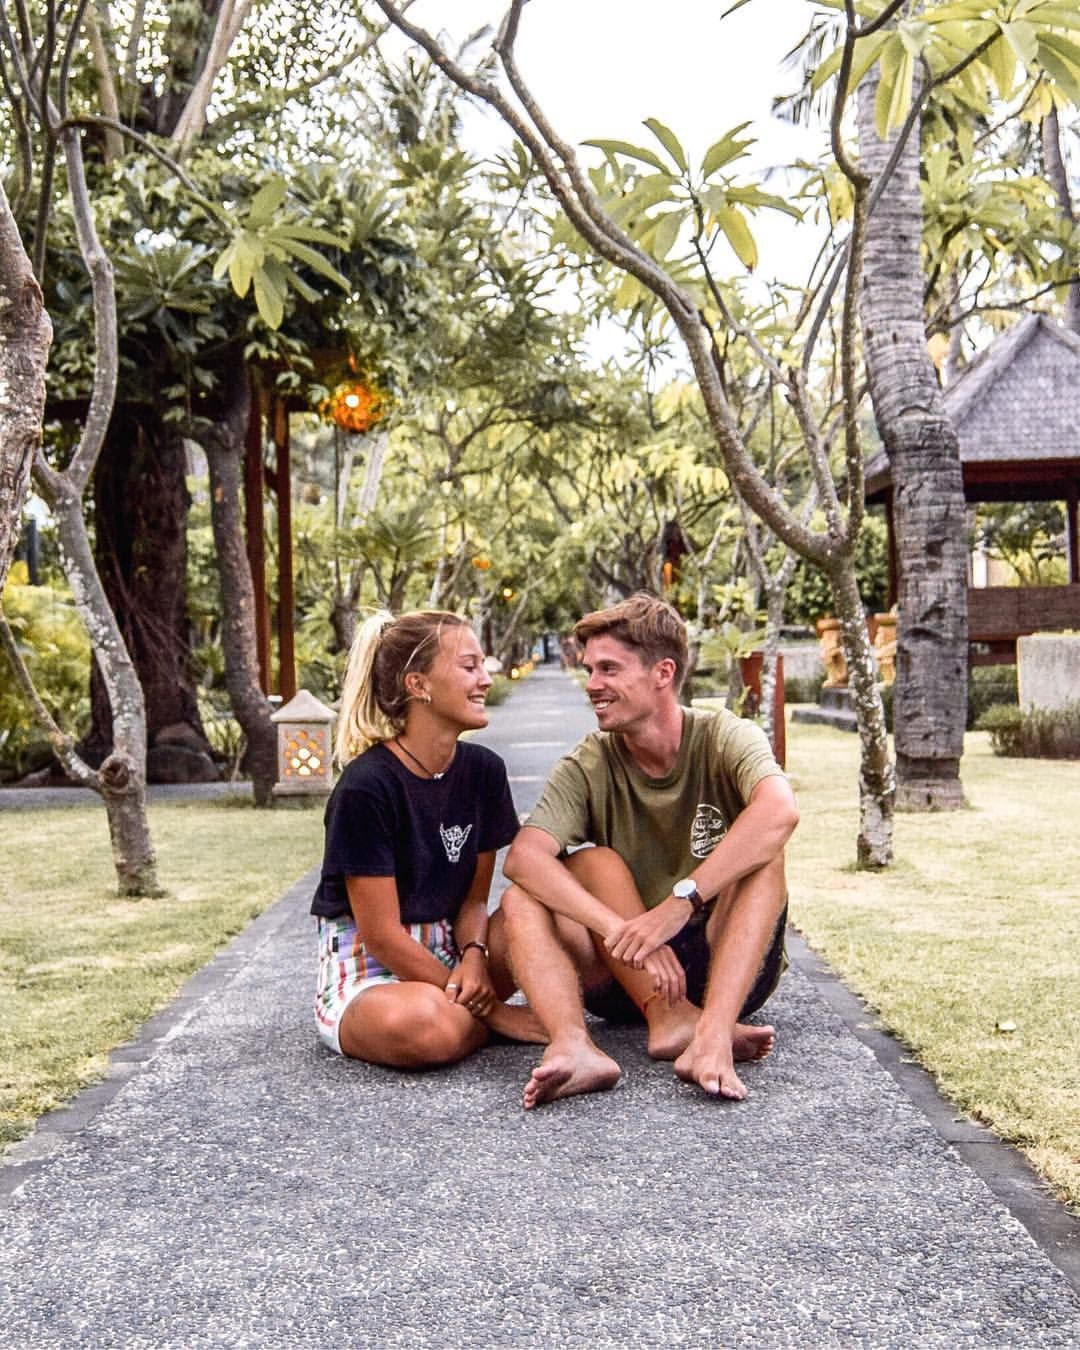 Gili T - Gili Trawangan Lombok Bali - Charlie & Lauren UK Travel Couple - Wanderers & Warriors